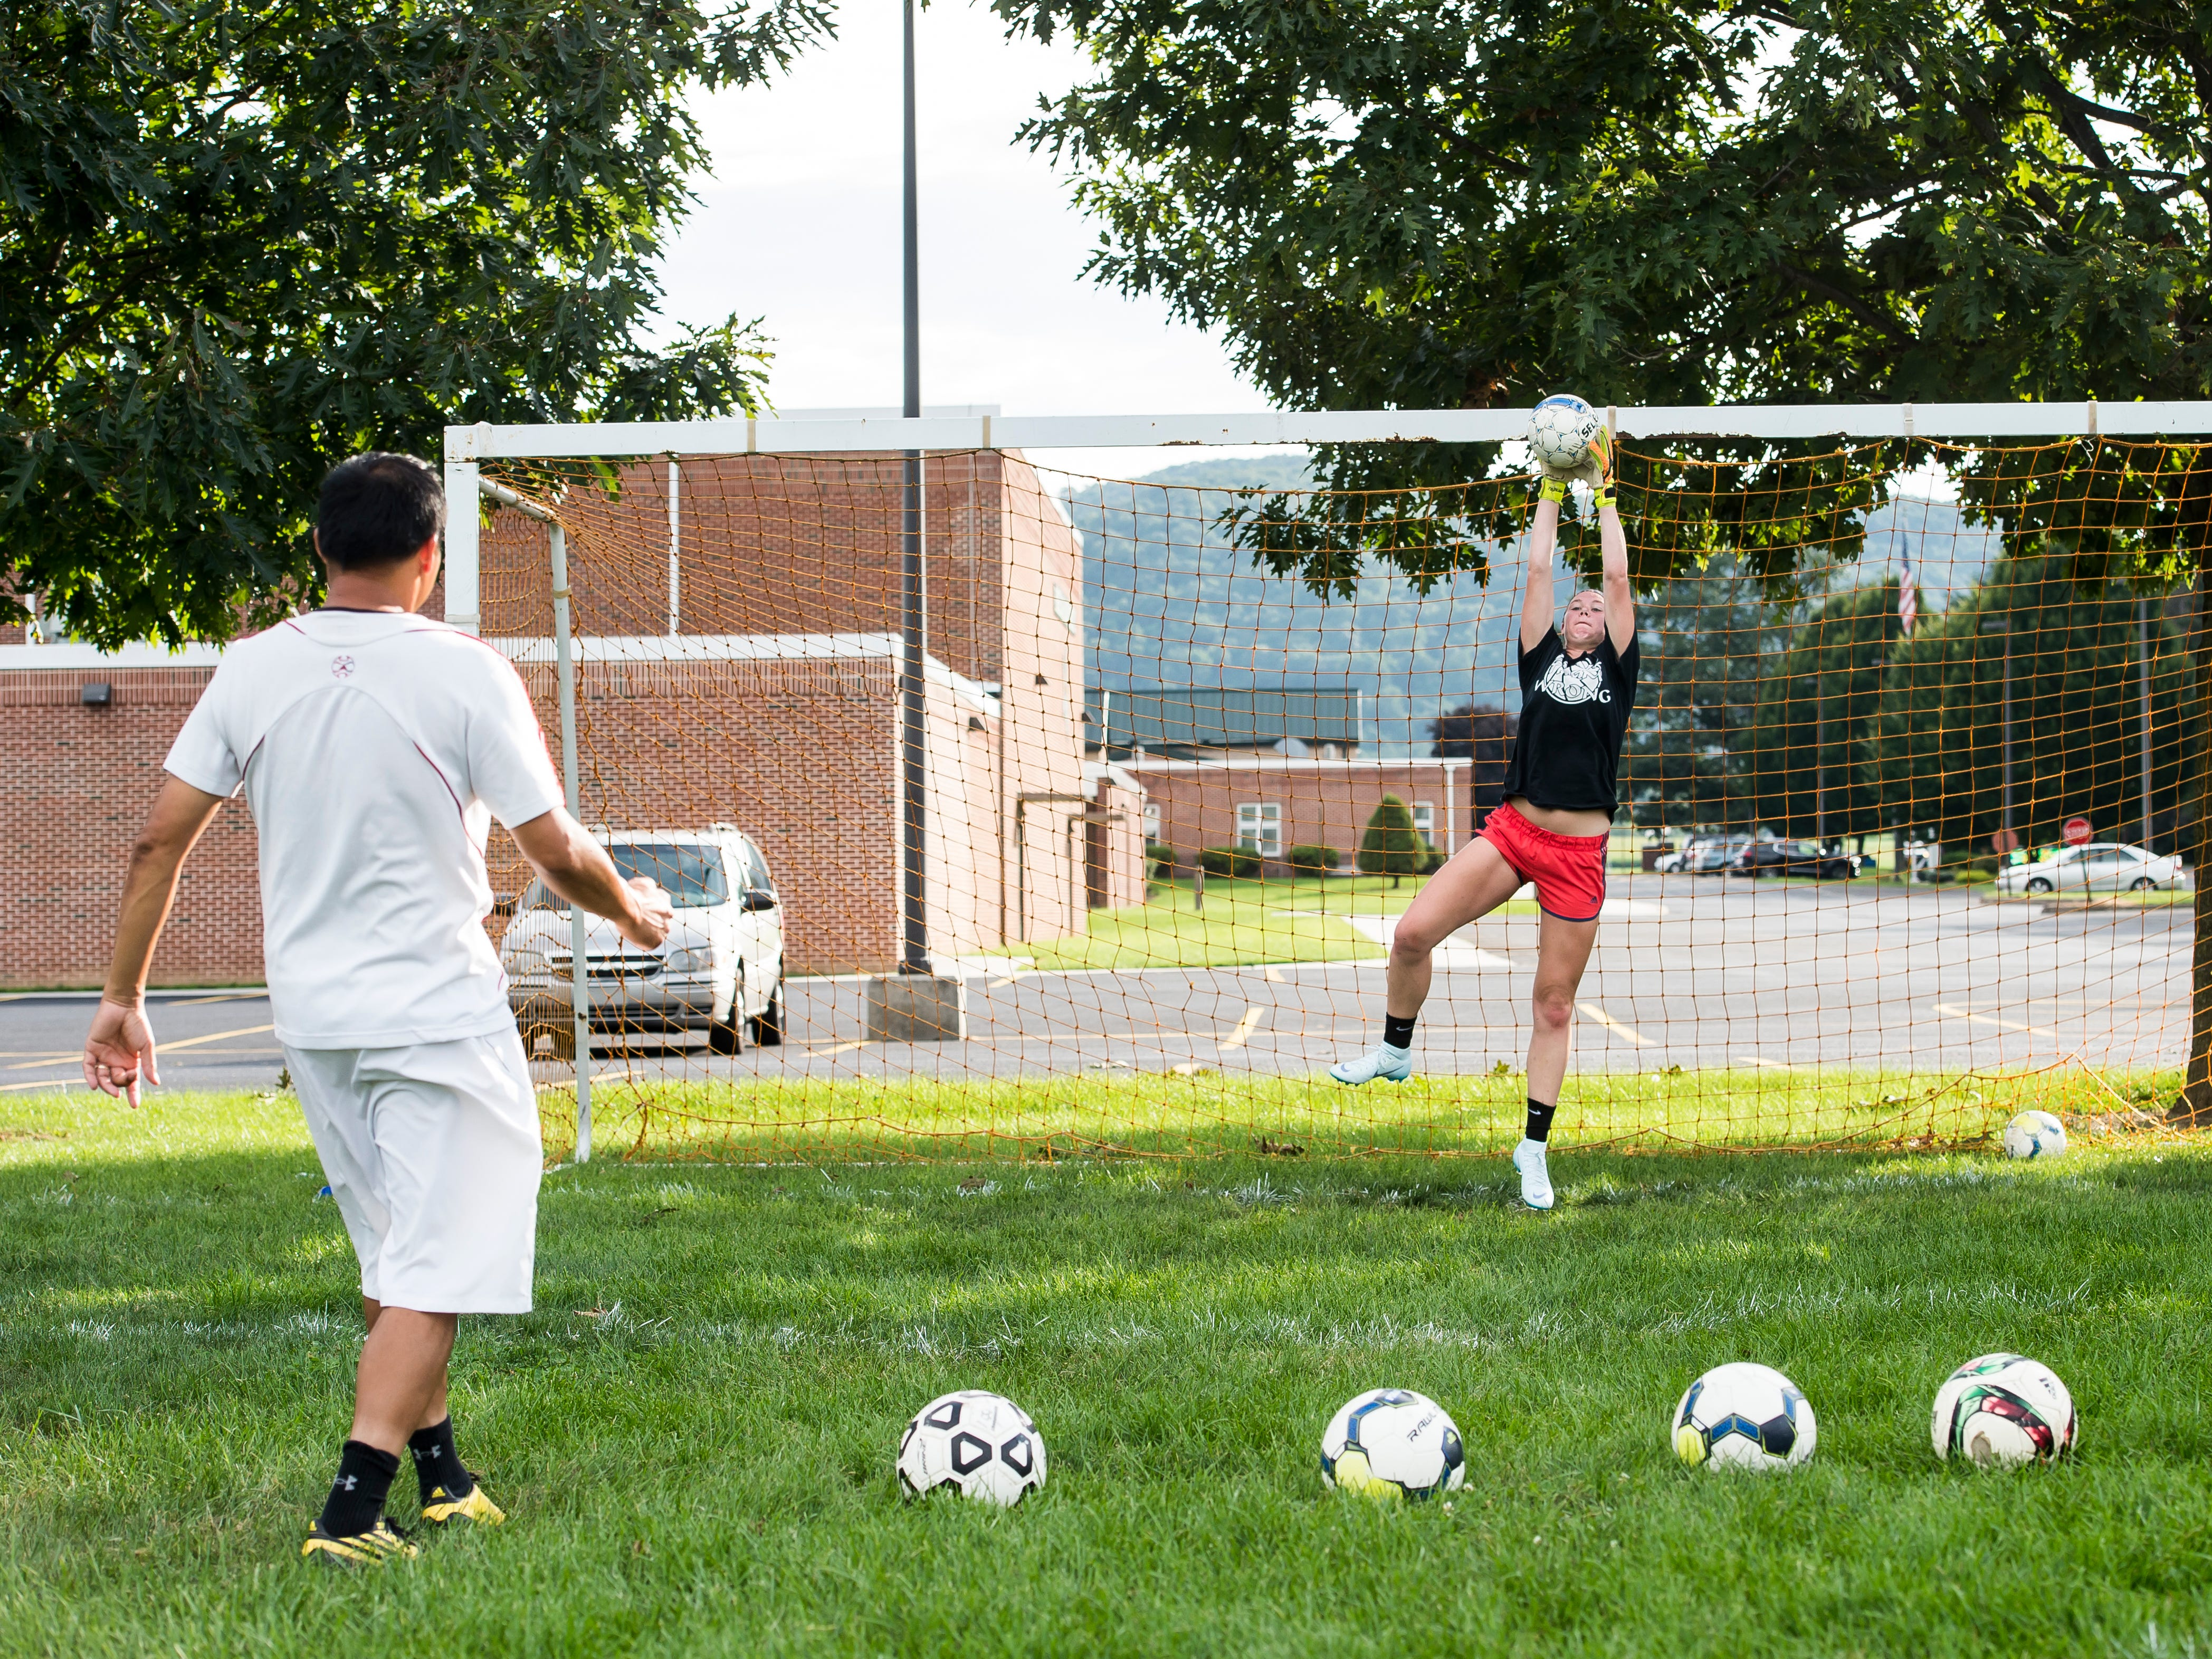 Fairfield junior goalkeeper Haley Bolin blocks a shot from the foot of coach Phomma Phanhthy during a rapid fire drill on the first day of fall sports practice on Monday, August 13, 2018.